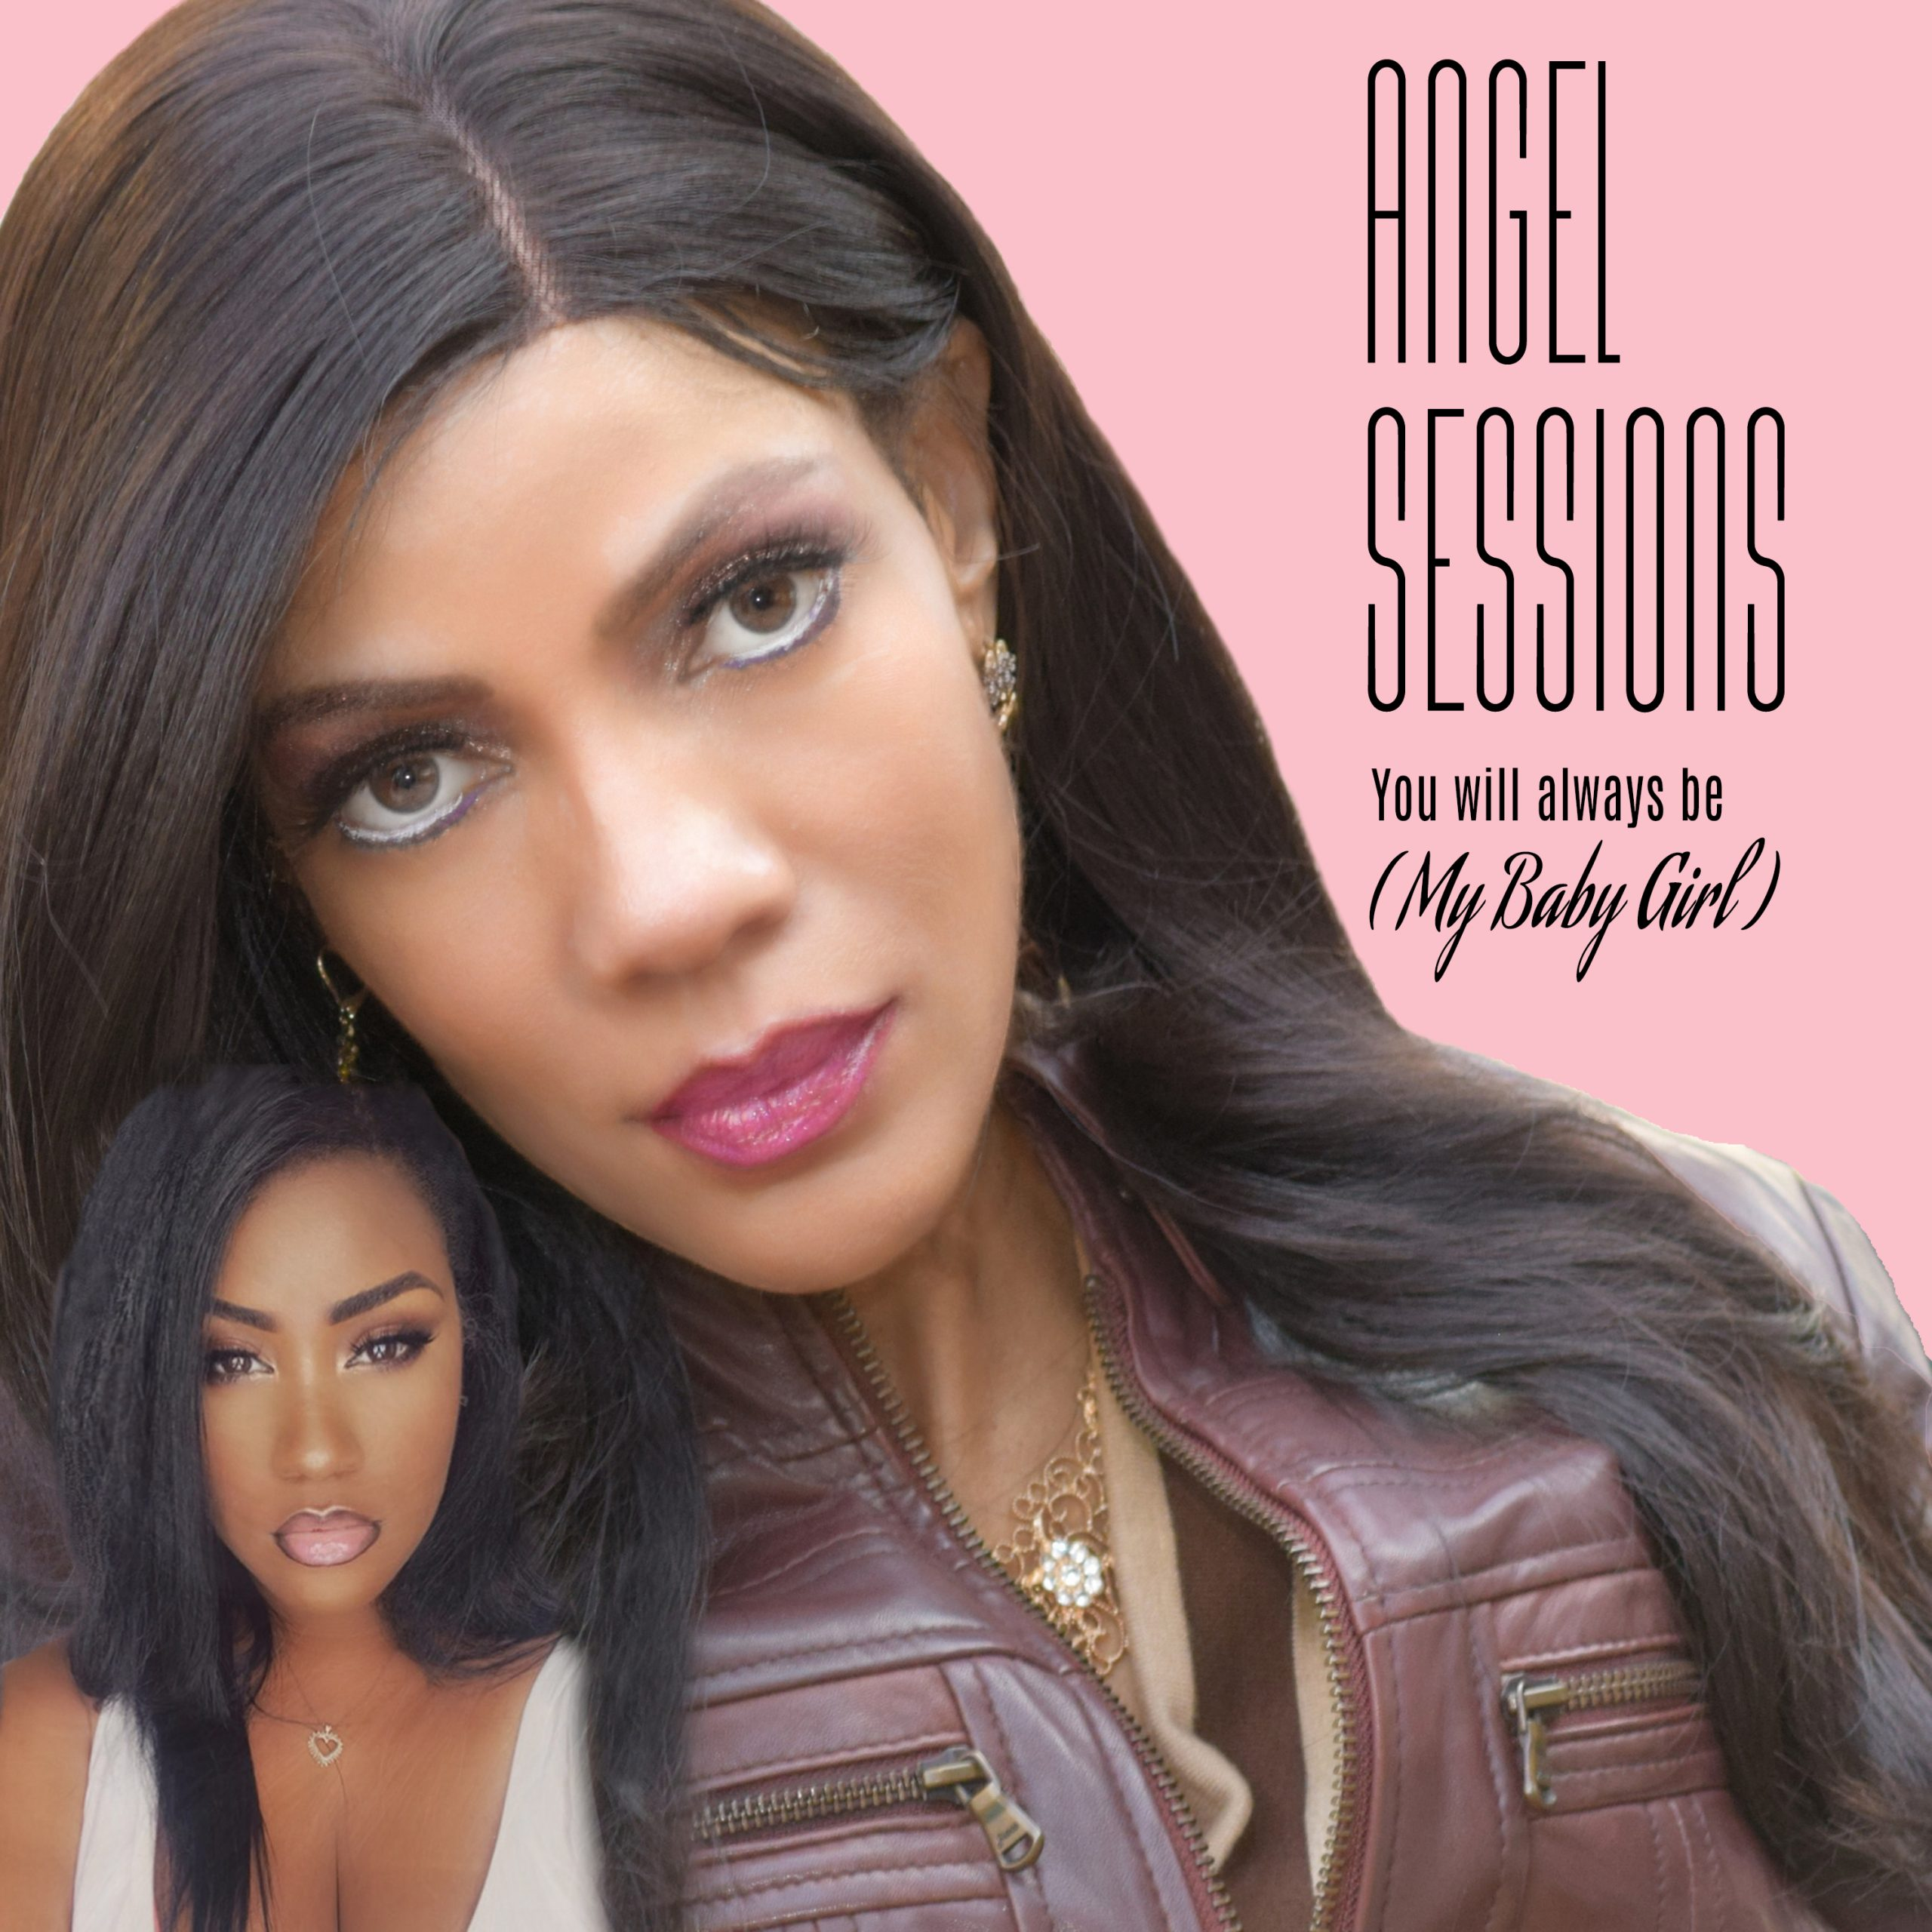 New Music: Angel Sessions – You Will Always Be (My Baby Girl)   @AngelSessions